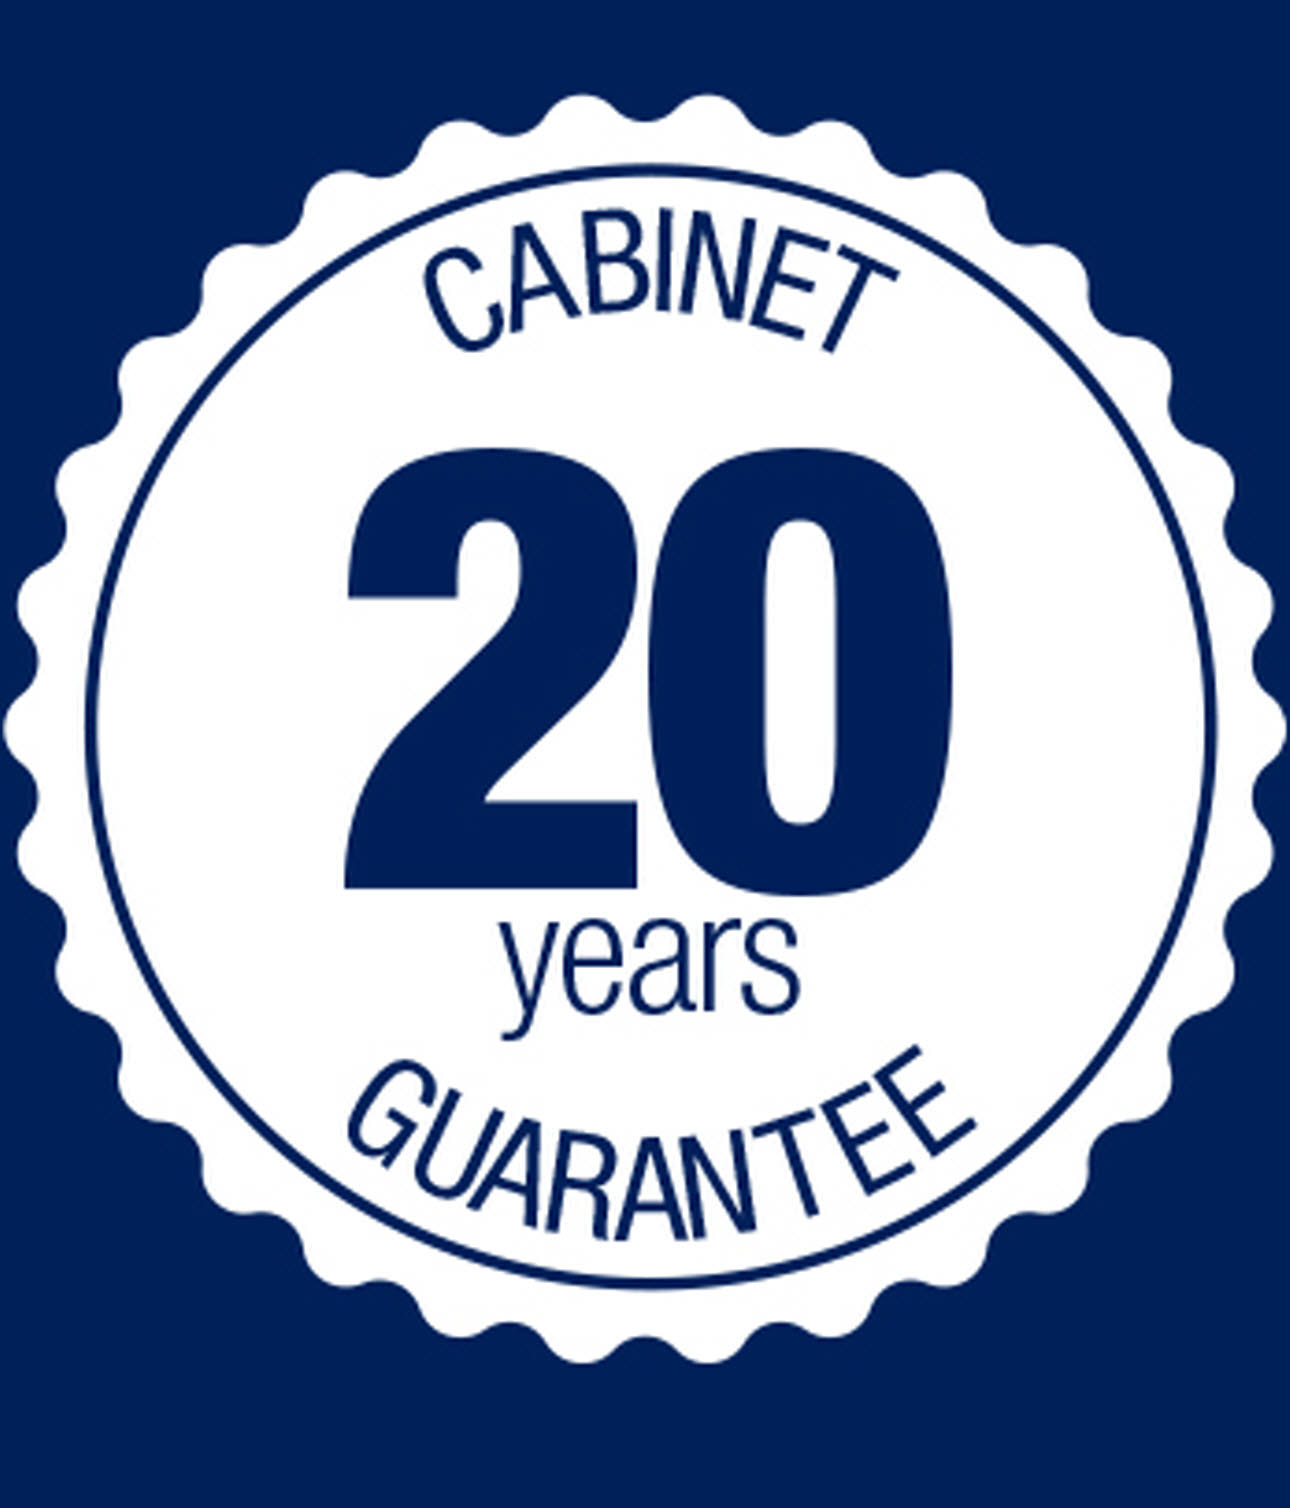 Magnet Trade Cabinet 20 Year Guarantee